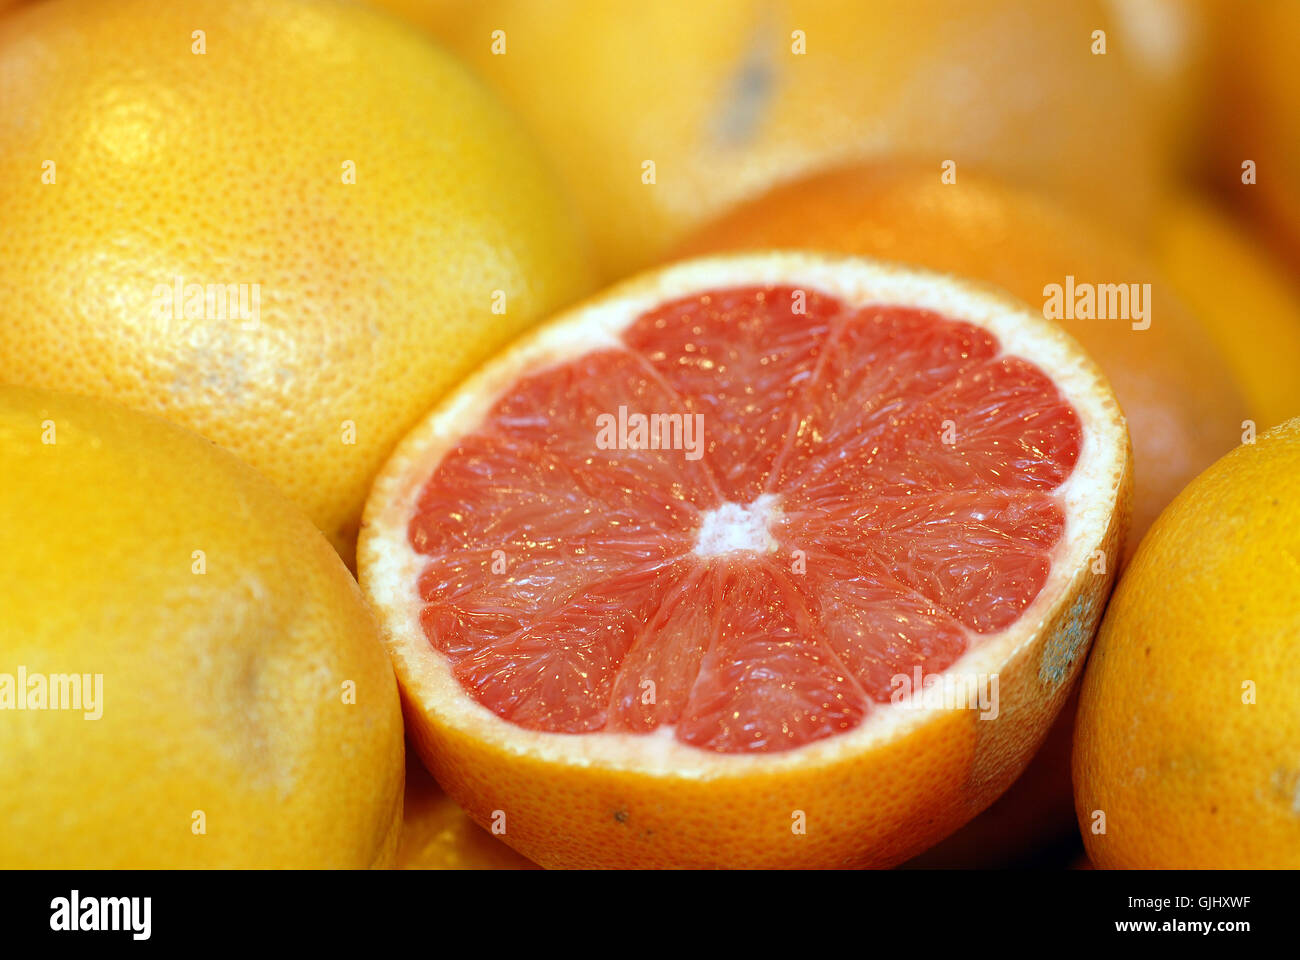 Vitamin fruit sour Photo Stock